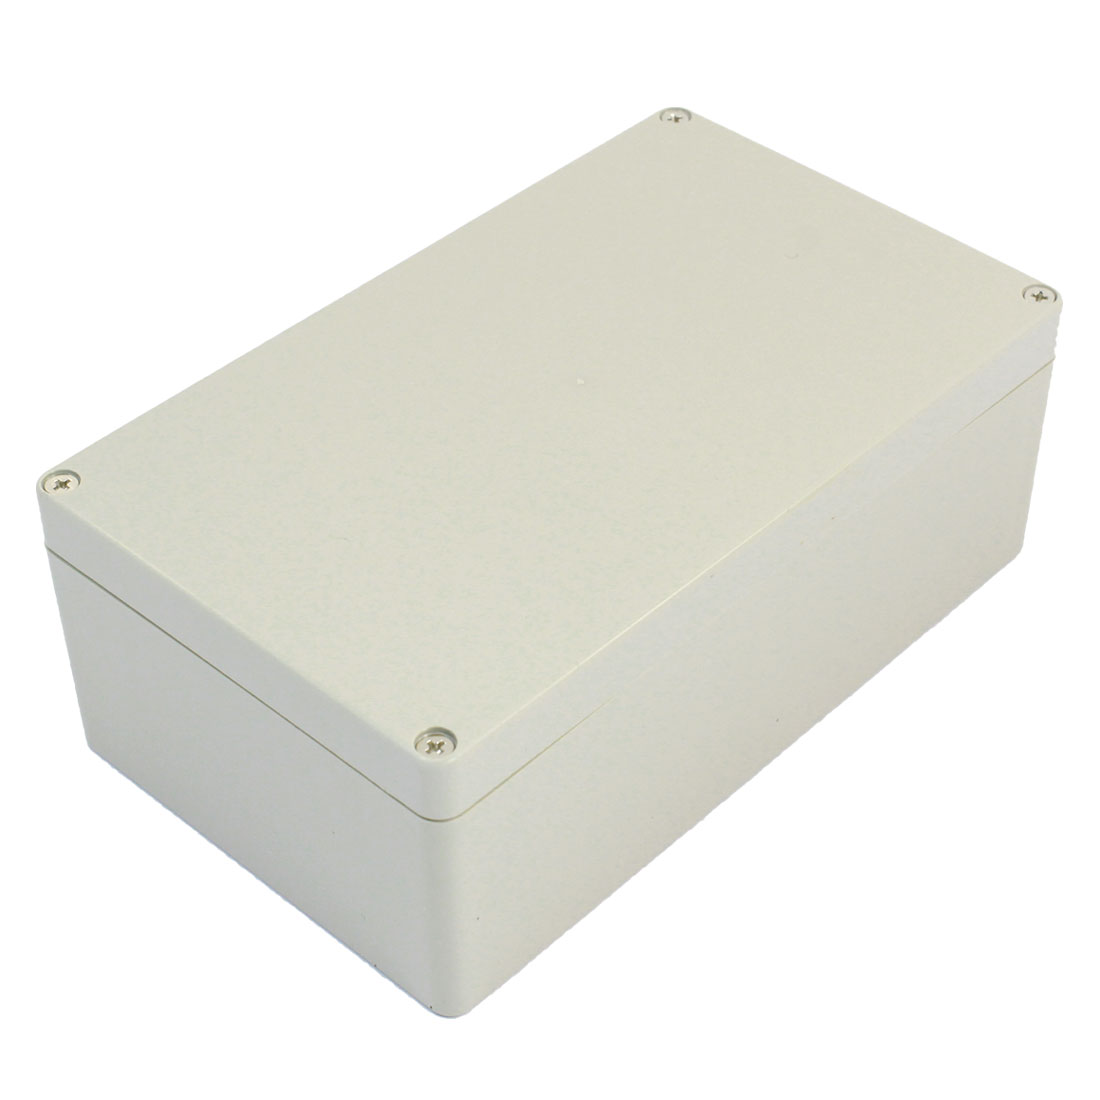 Rectangular Waterproof Plastic DIY Junction Box Case 195 x 115 x 73mm